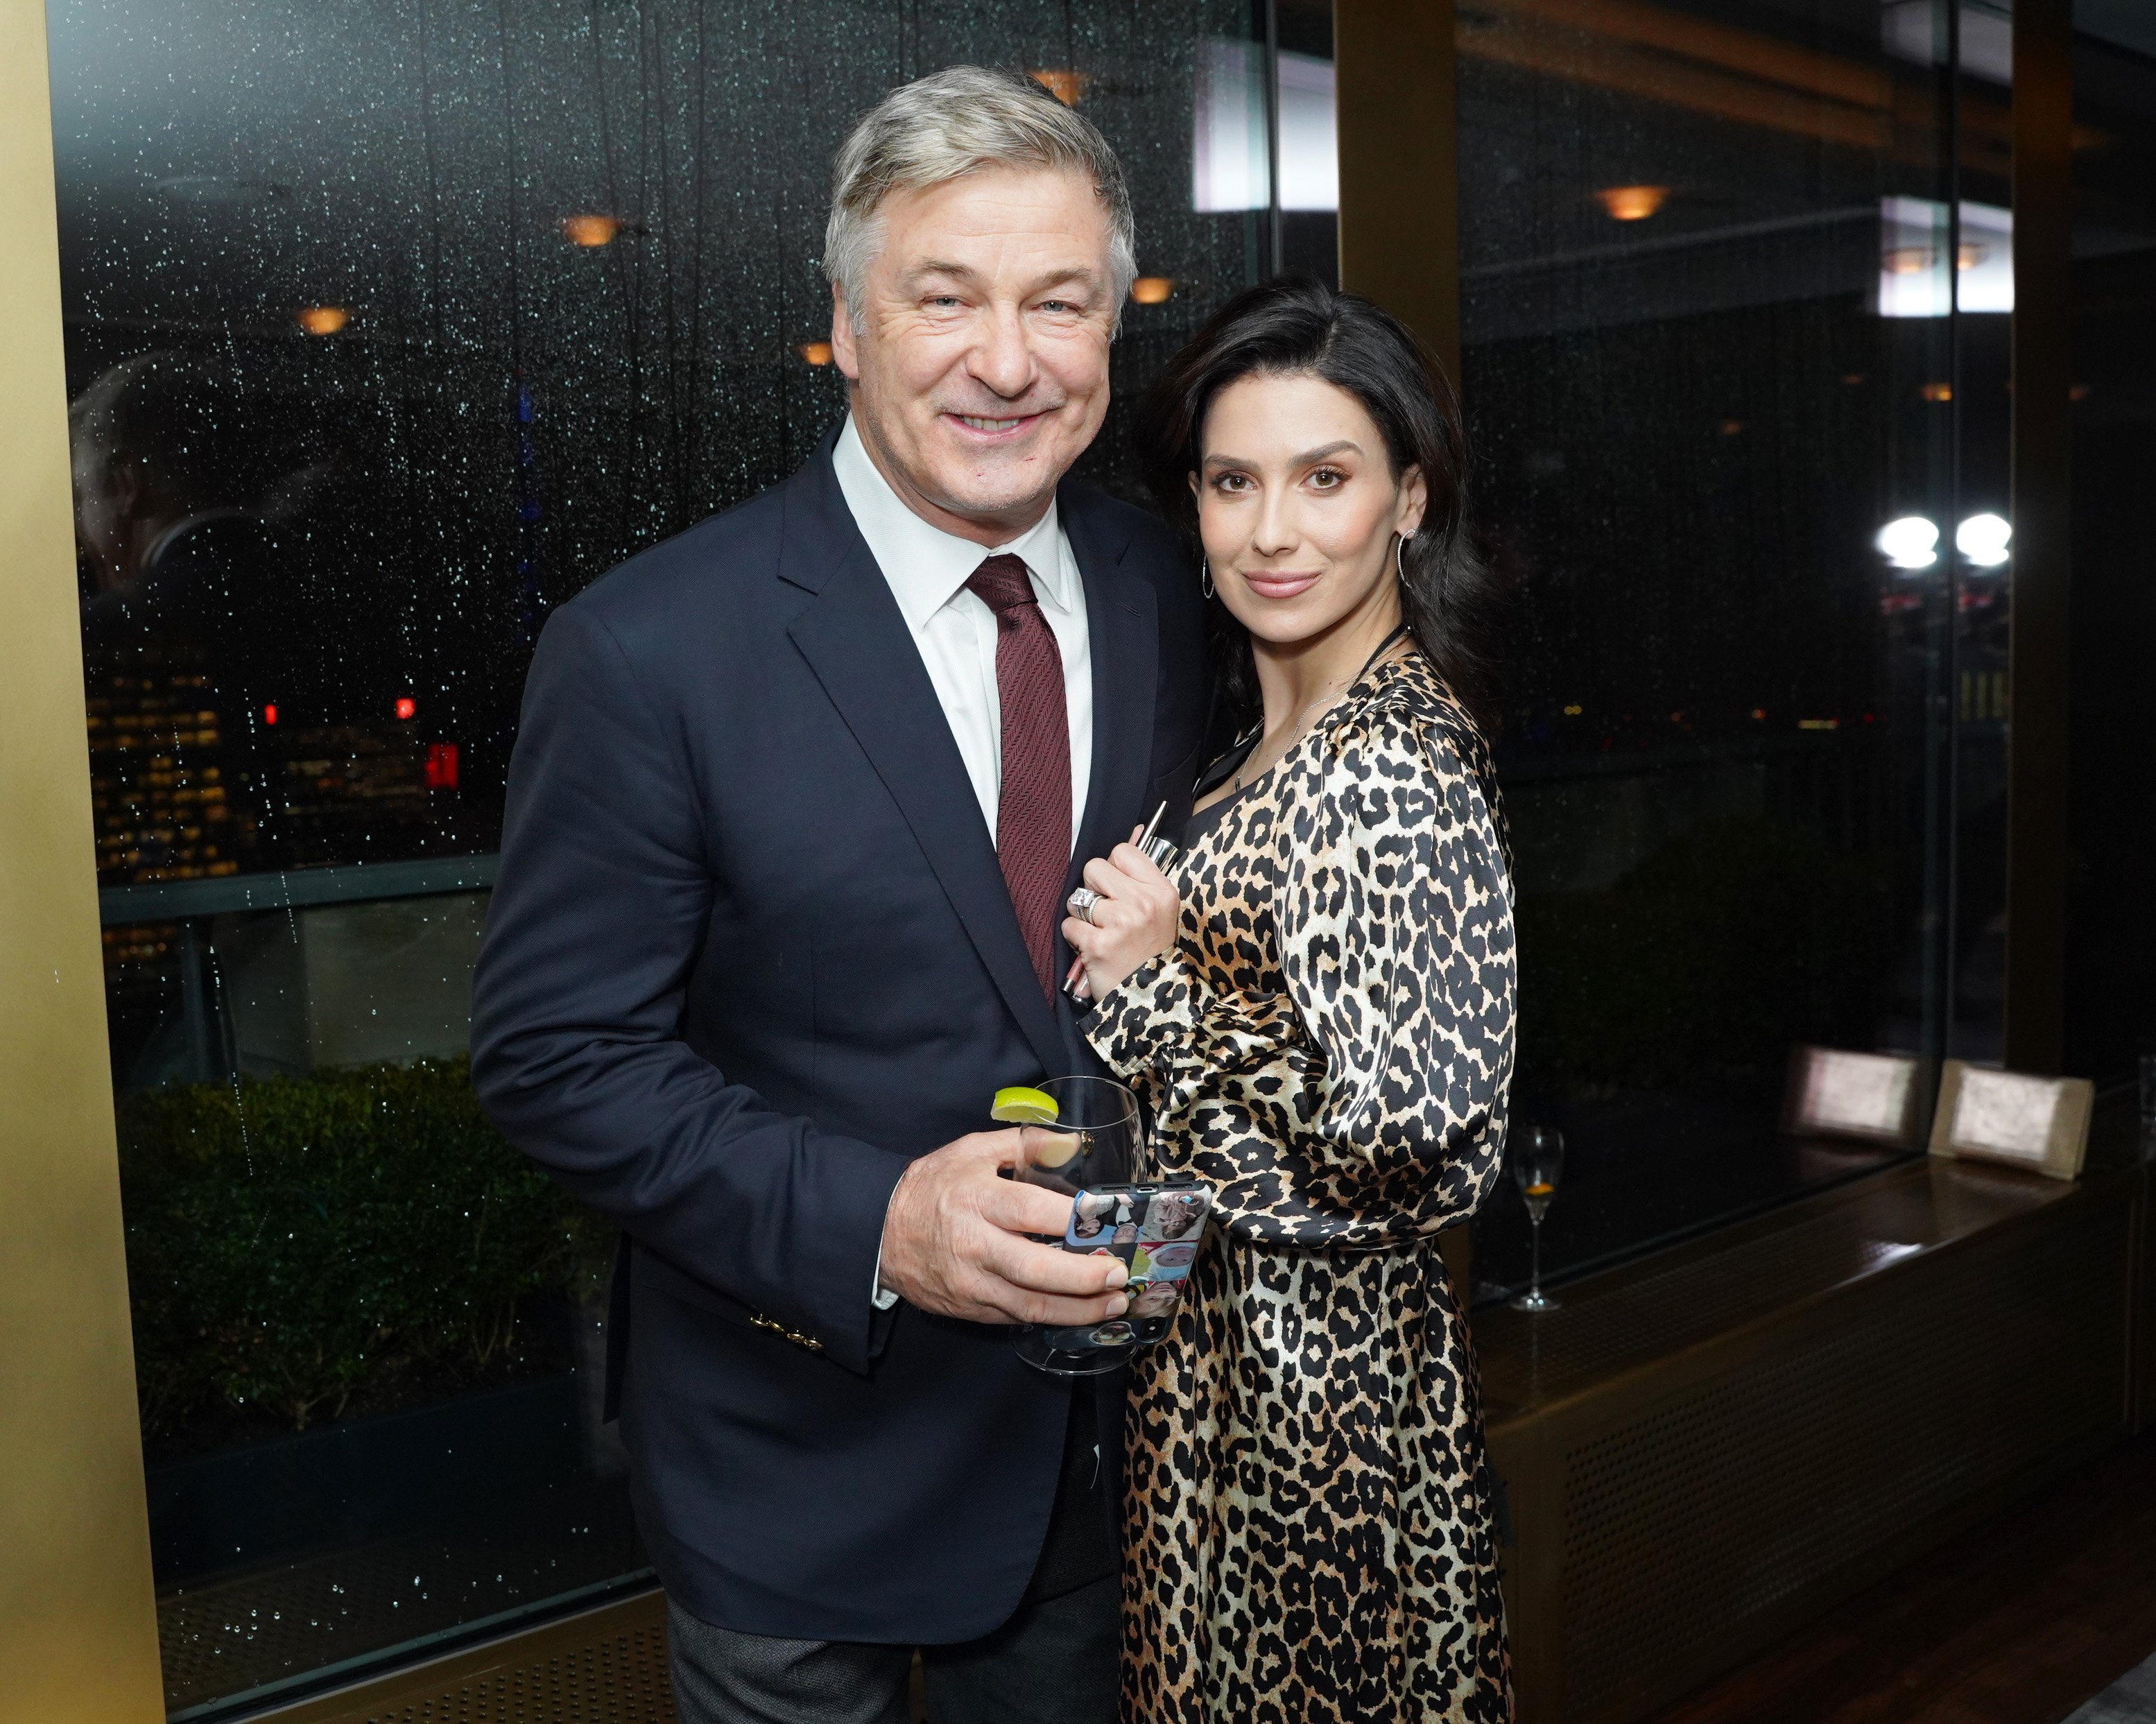 Alec and Hilaria Baldwin pictured at Guild Hall Academy Of The Arts Achievement Awards 2020 at the Rainbow Room, 2020 in New York City. | Photo: Getty Images